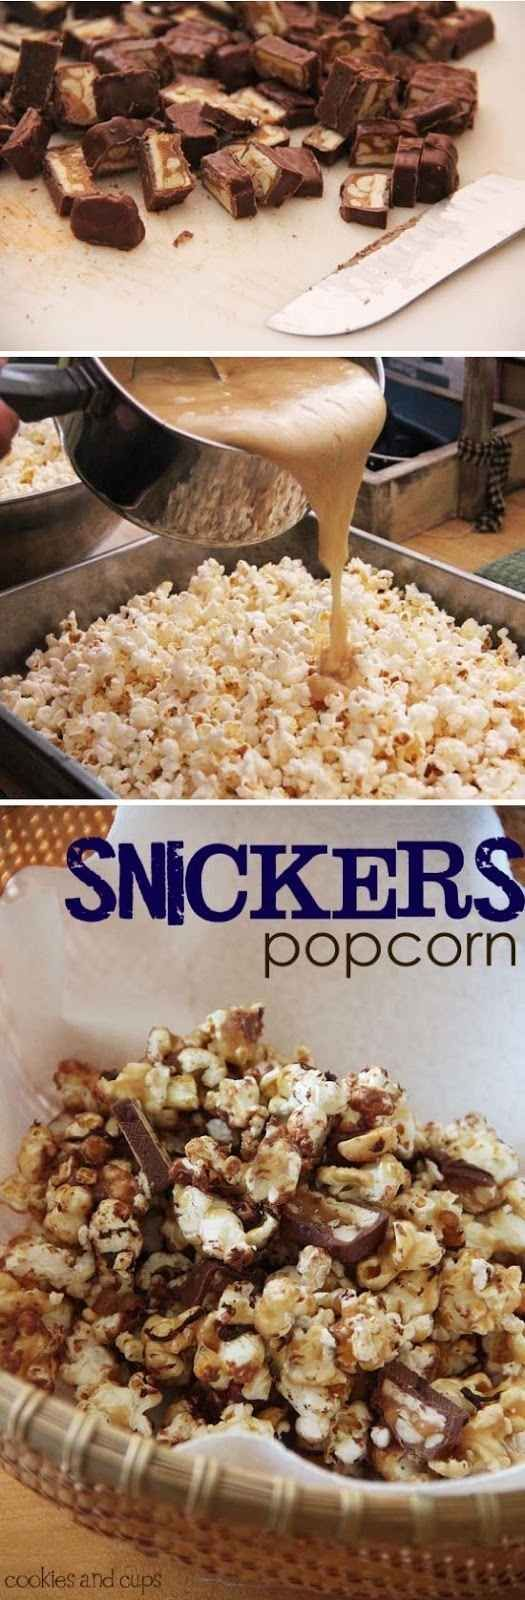 Snickers Popcorn | This Will Make You Drool